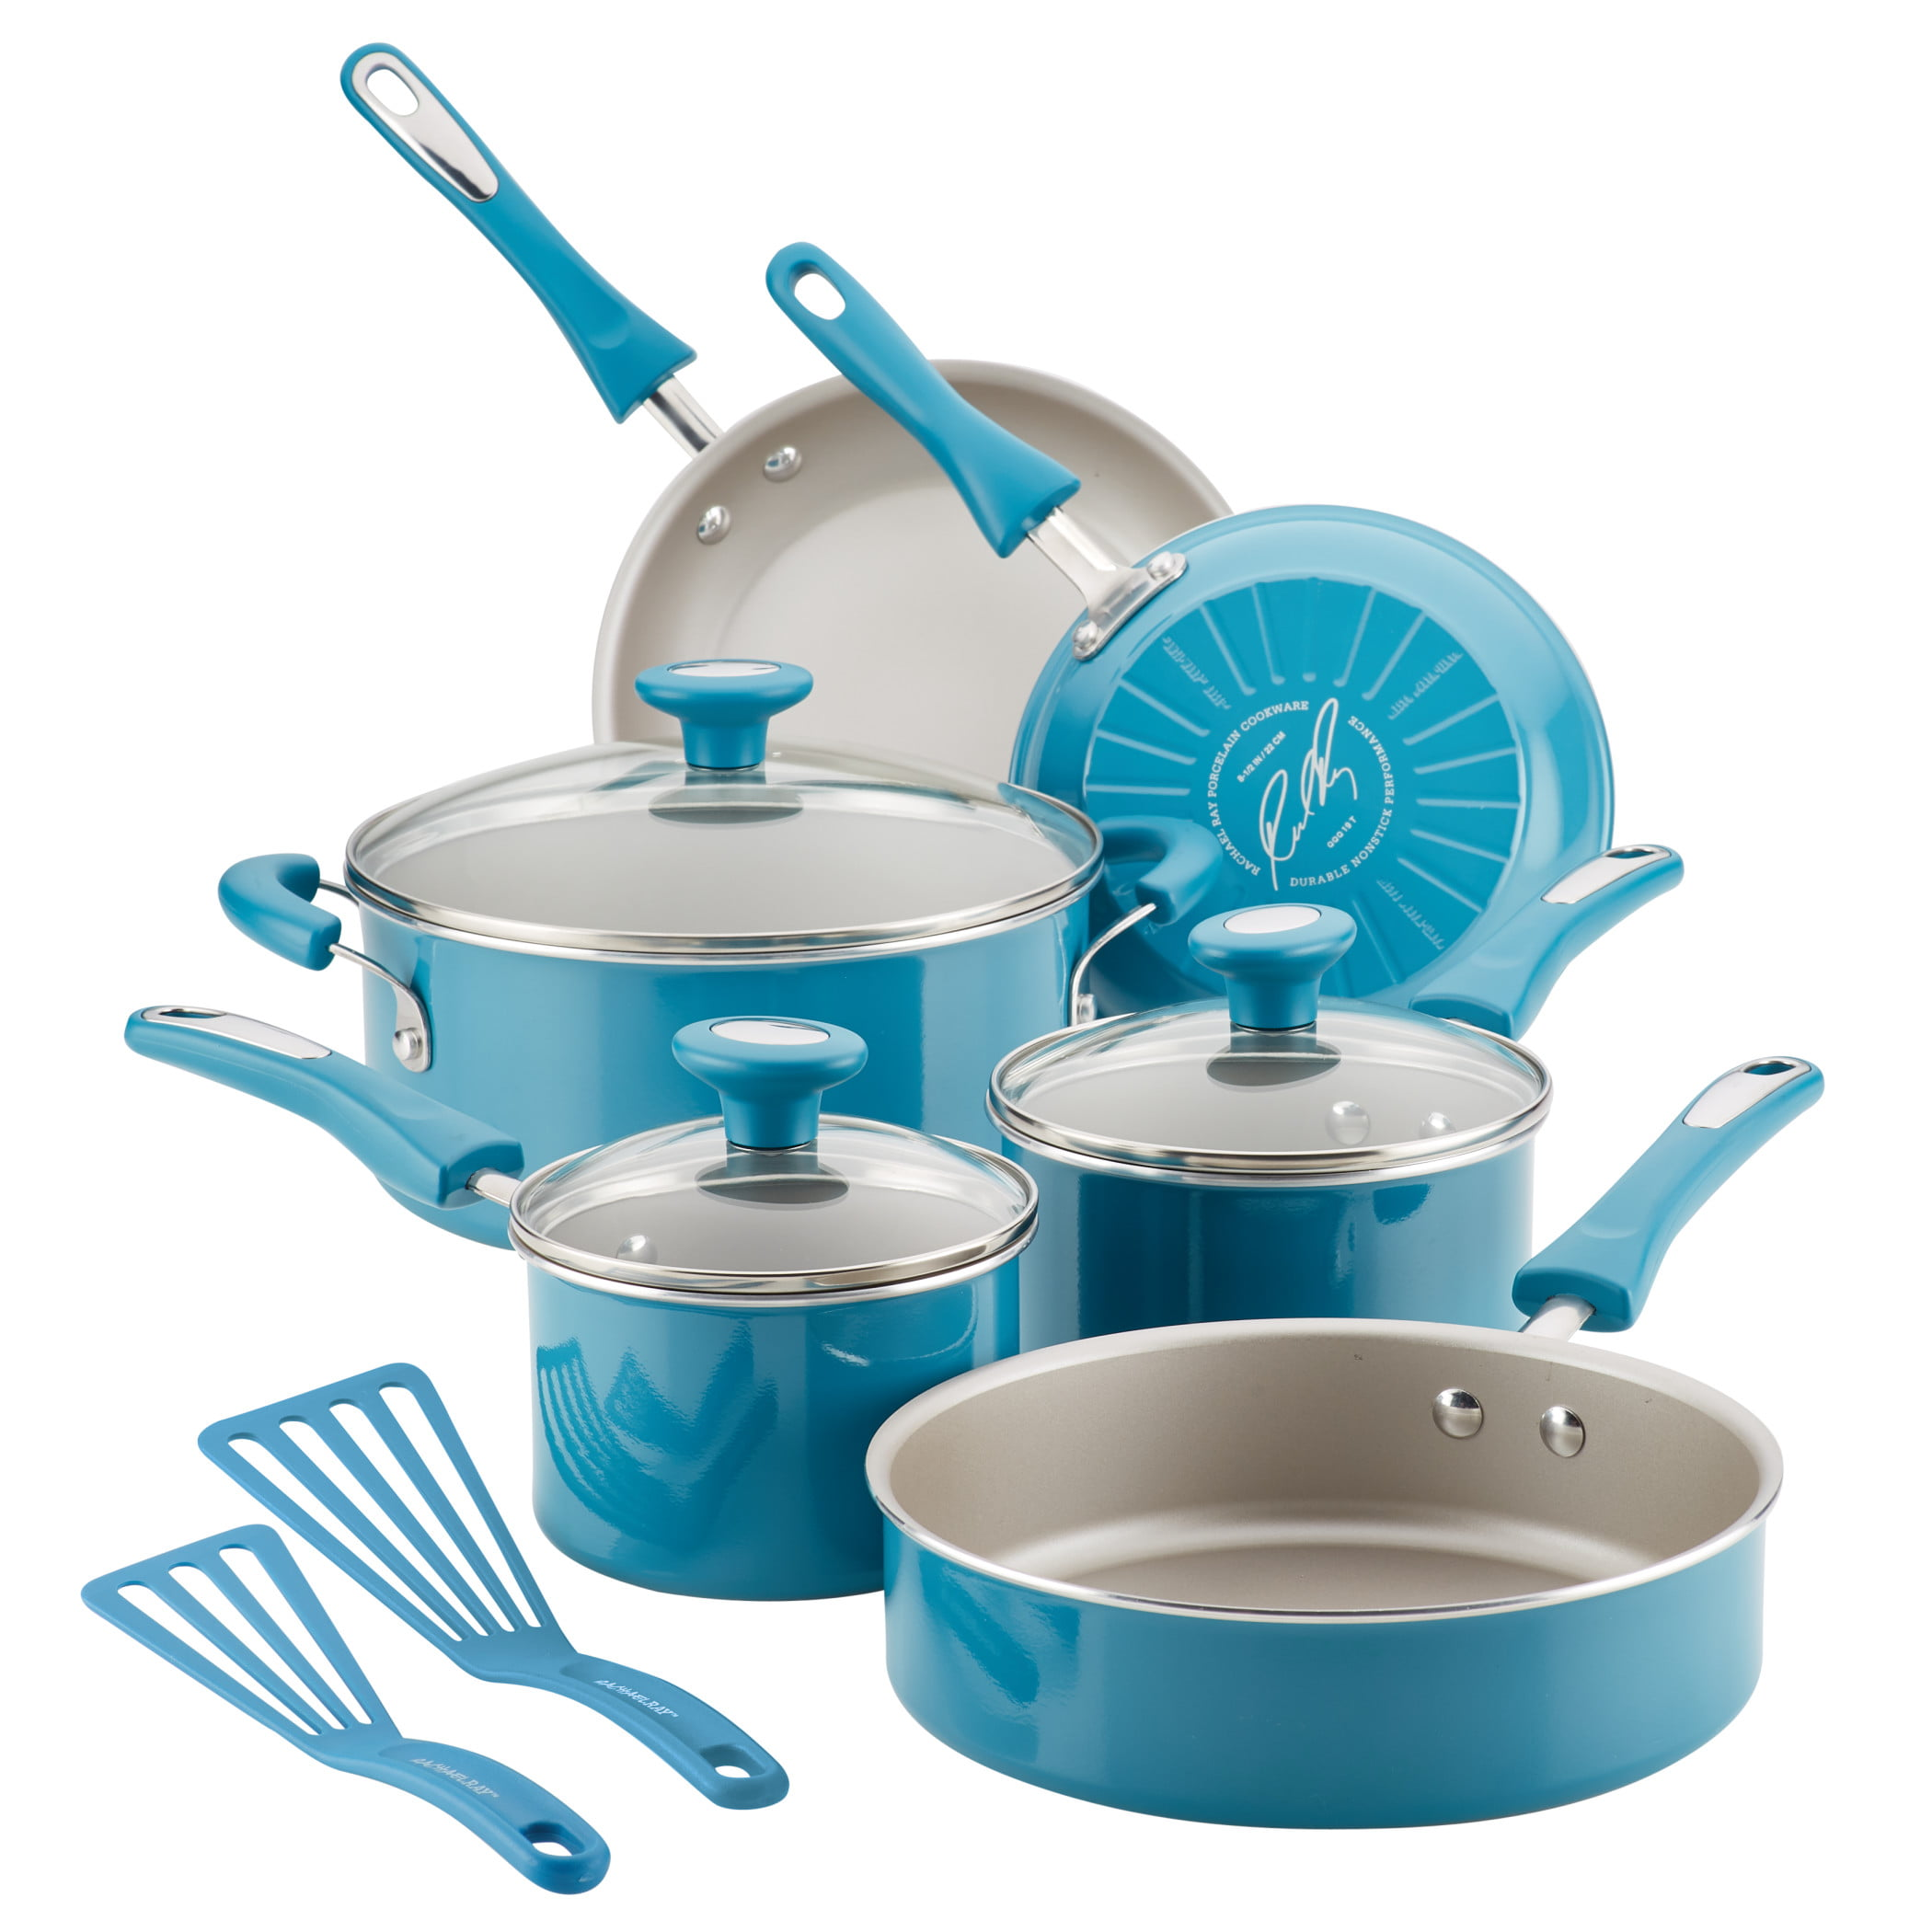 Rachael Ray Get Cooking! Aluminum Non-Stick Turquoise Cookware Set, 11  Piece - Walmart.com